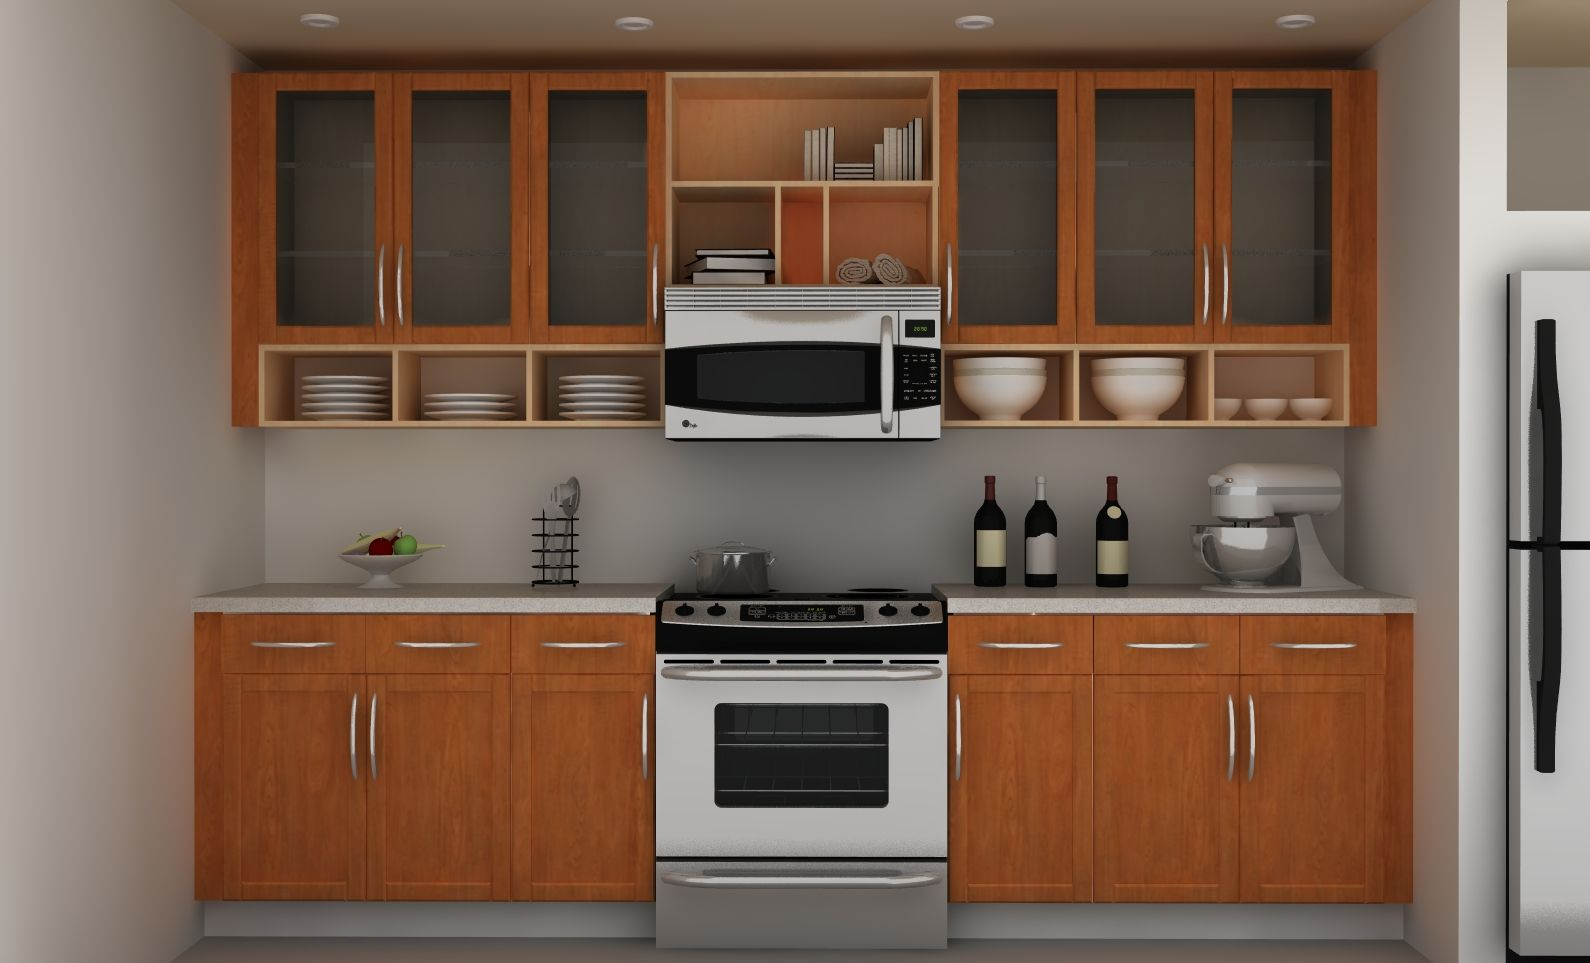 Ikea Kitchen Designs Http Www Weddinex Home Decoration. Kitchen Wall Cabinet Design. Ikea Kitchen Designs Http Www Weddinex Home Decoration. Design Kitchen Cabinets India Ideas Kitchen Cabinet Design